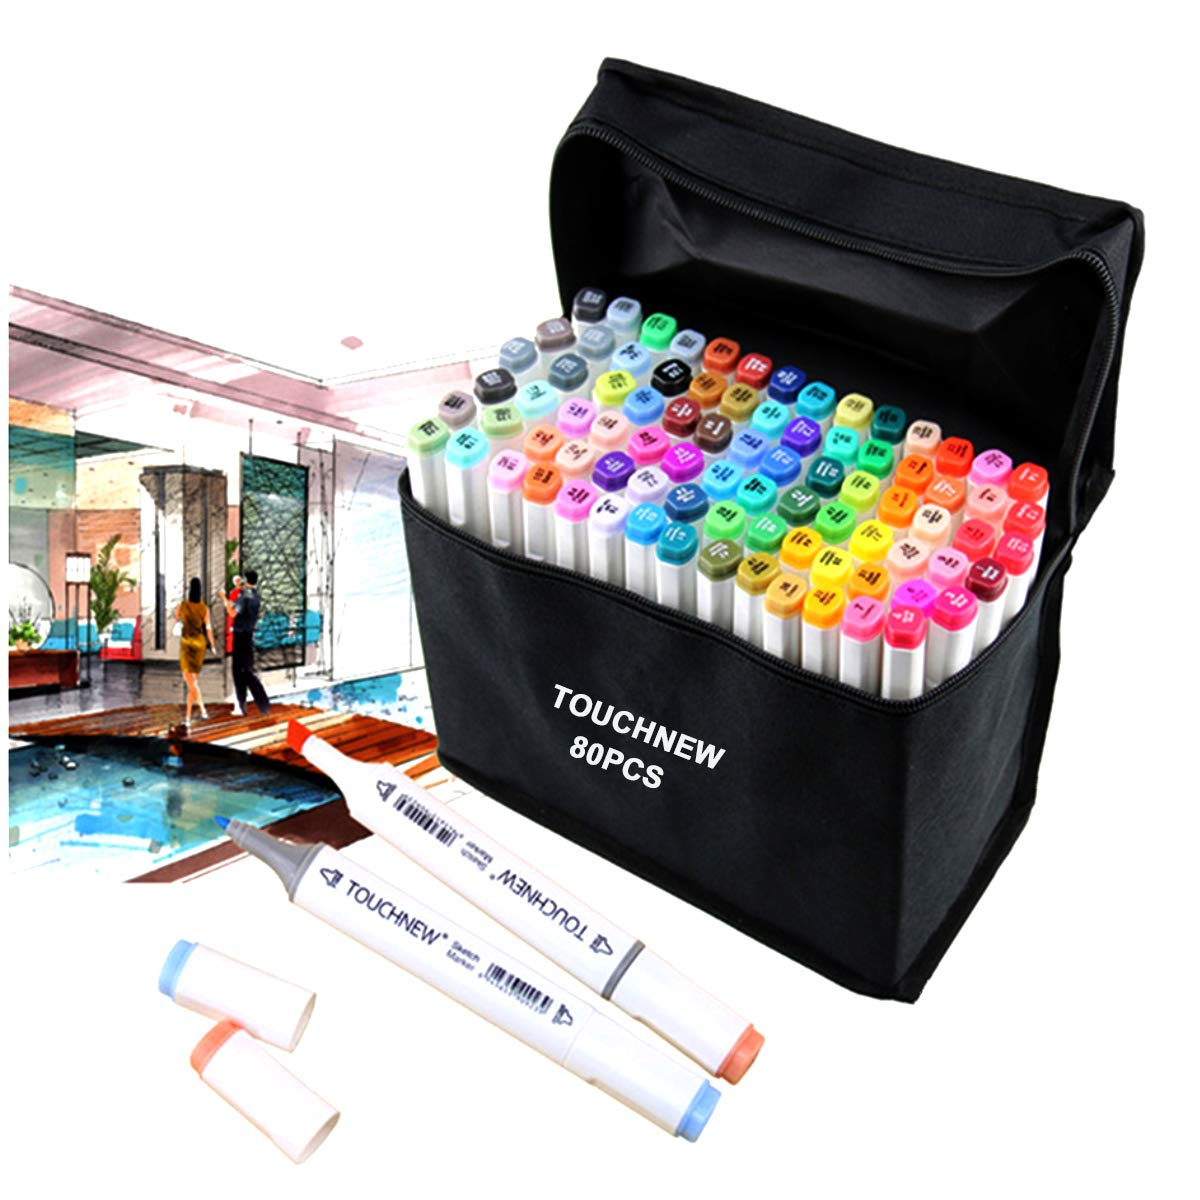 Togood 40 Different Colors Art Sketch Twin Marker Pens,Dual Tips Broad Fine, Professional Marker Set for Coloring Painting Manga Design MallMall